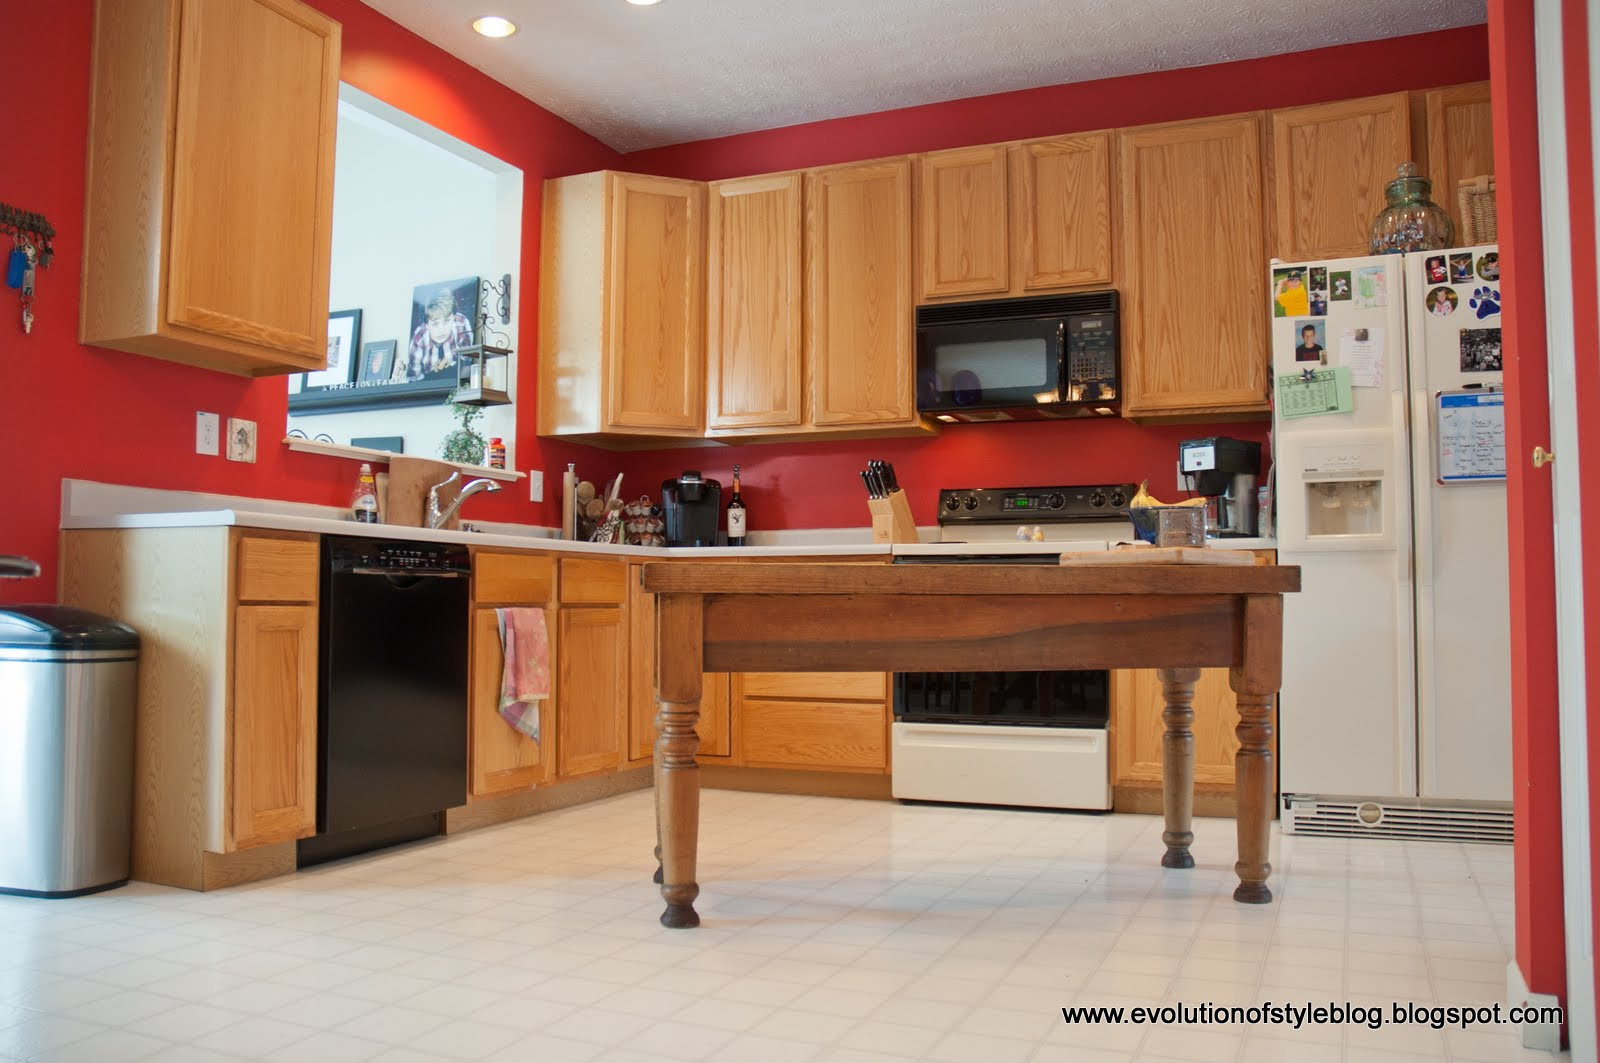 Oak Kitchen Reveal: From Builder Grade to Custom Made - Evolution of on red painted tile, red painted doors, red painted kitchen cabinet colors, red painted dining room, red painted kitchen island, red painted bedroom, red painted windows, red painted refrigerator, red painted hardwood floors,